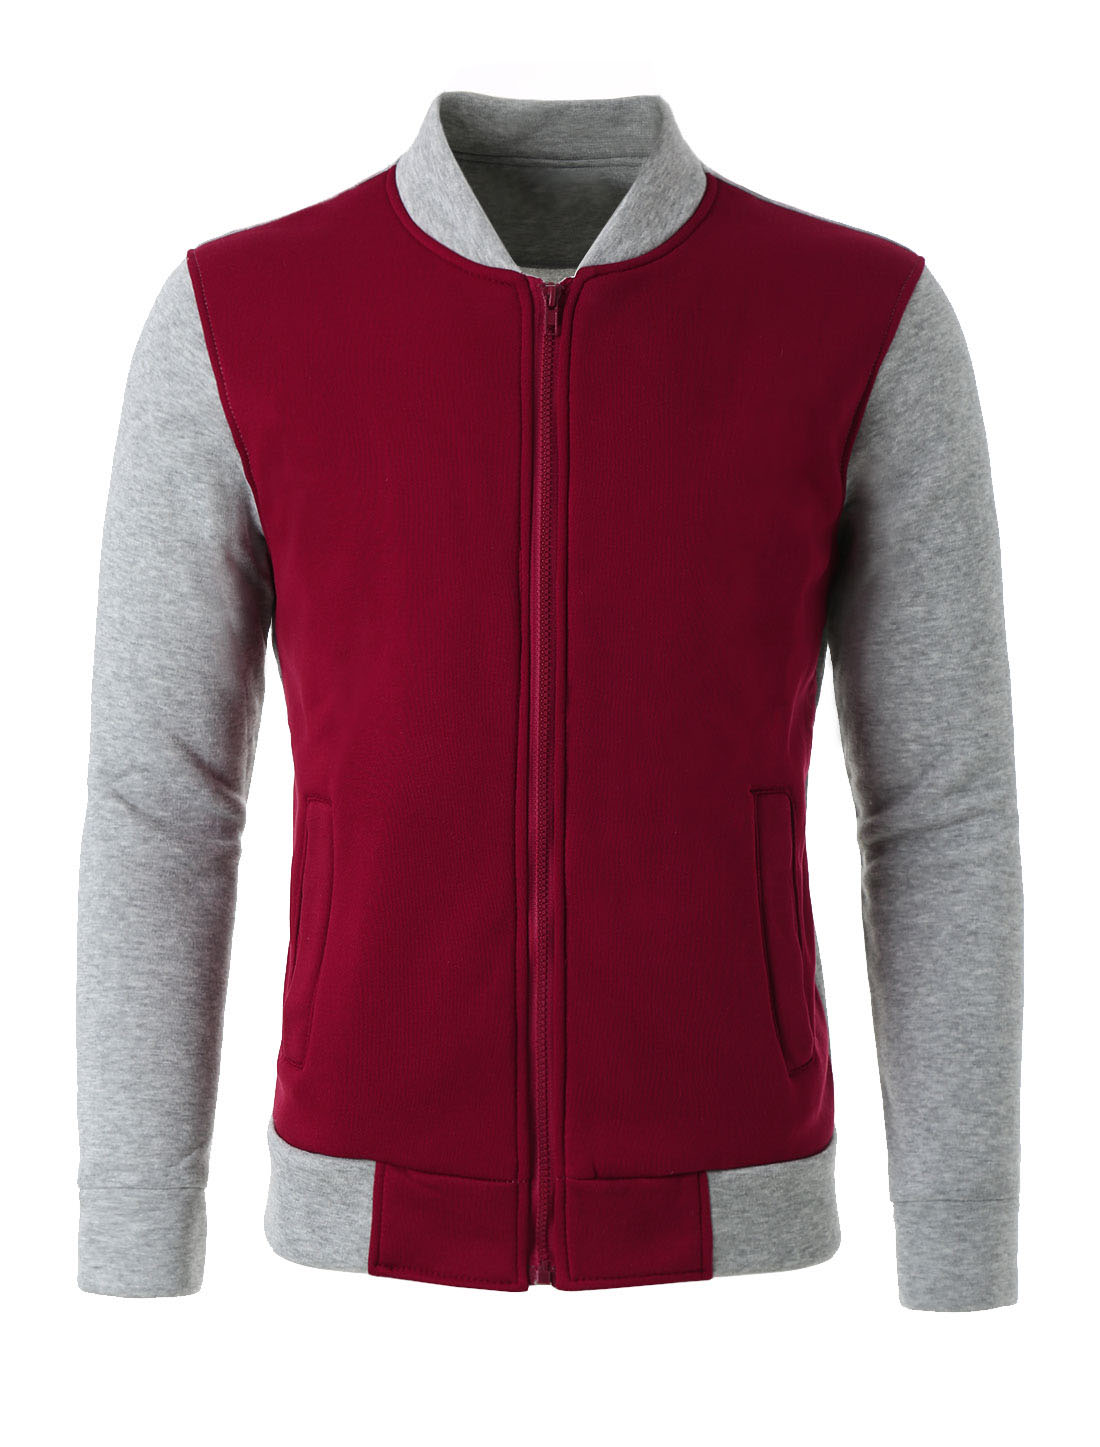 Men Stand Collar Color Block Zipper Front Long Sleeves Cozy Outdoor Varsity Jacket Burgundy Light Gray S